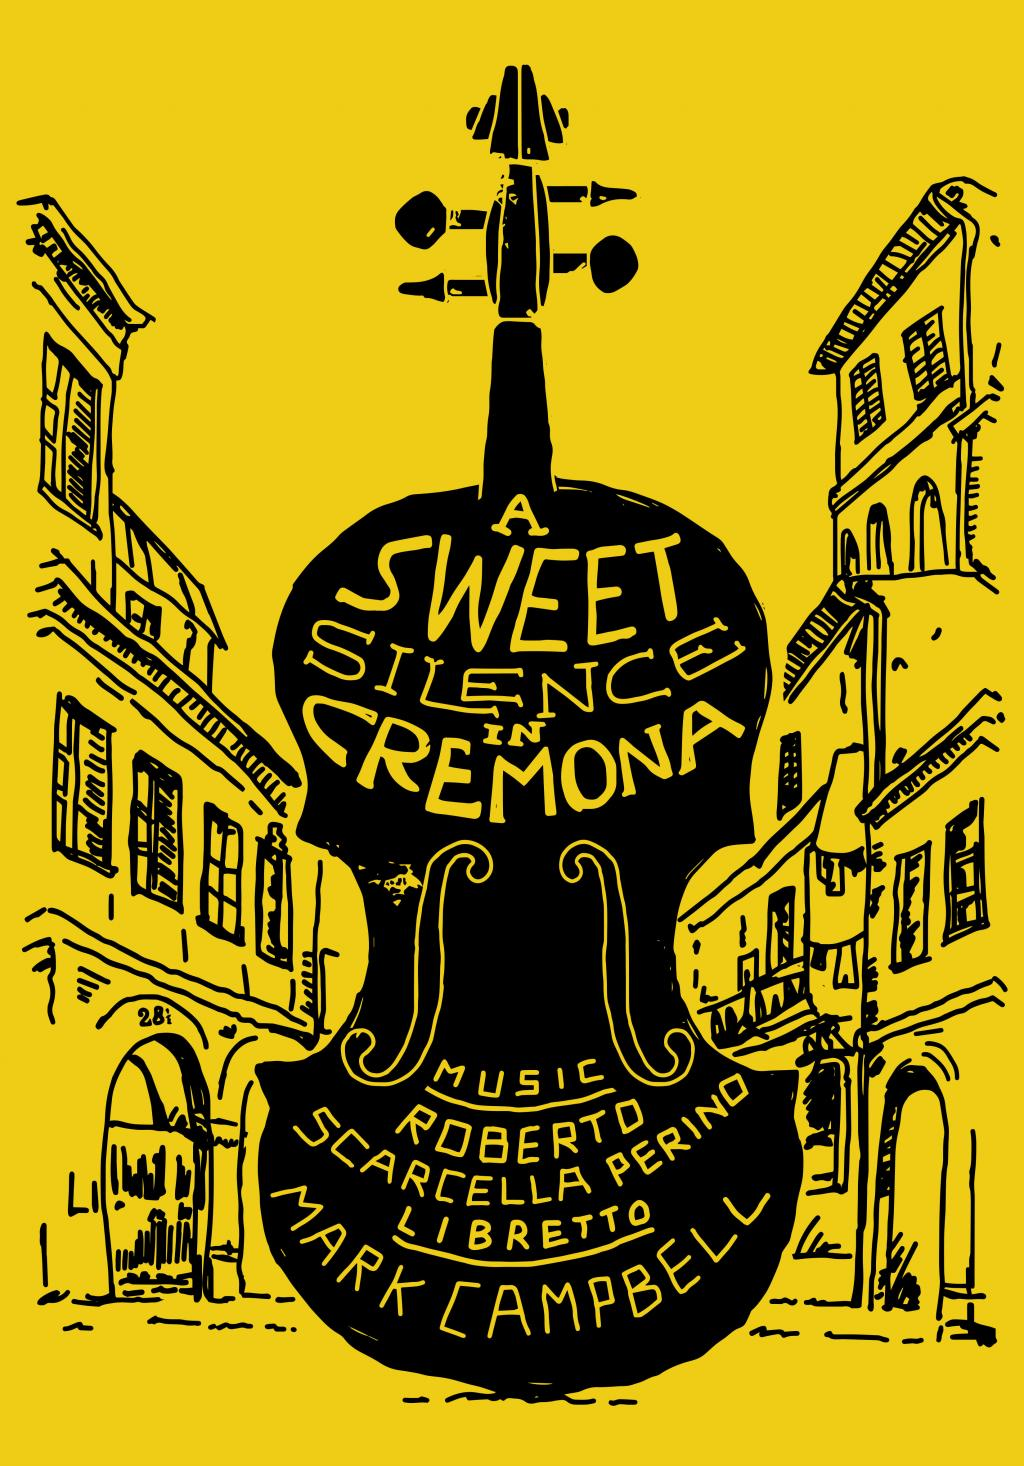 A Sweet Silence in Cremona poster